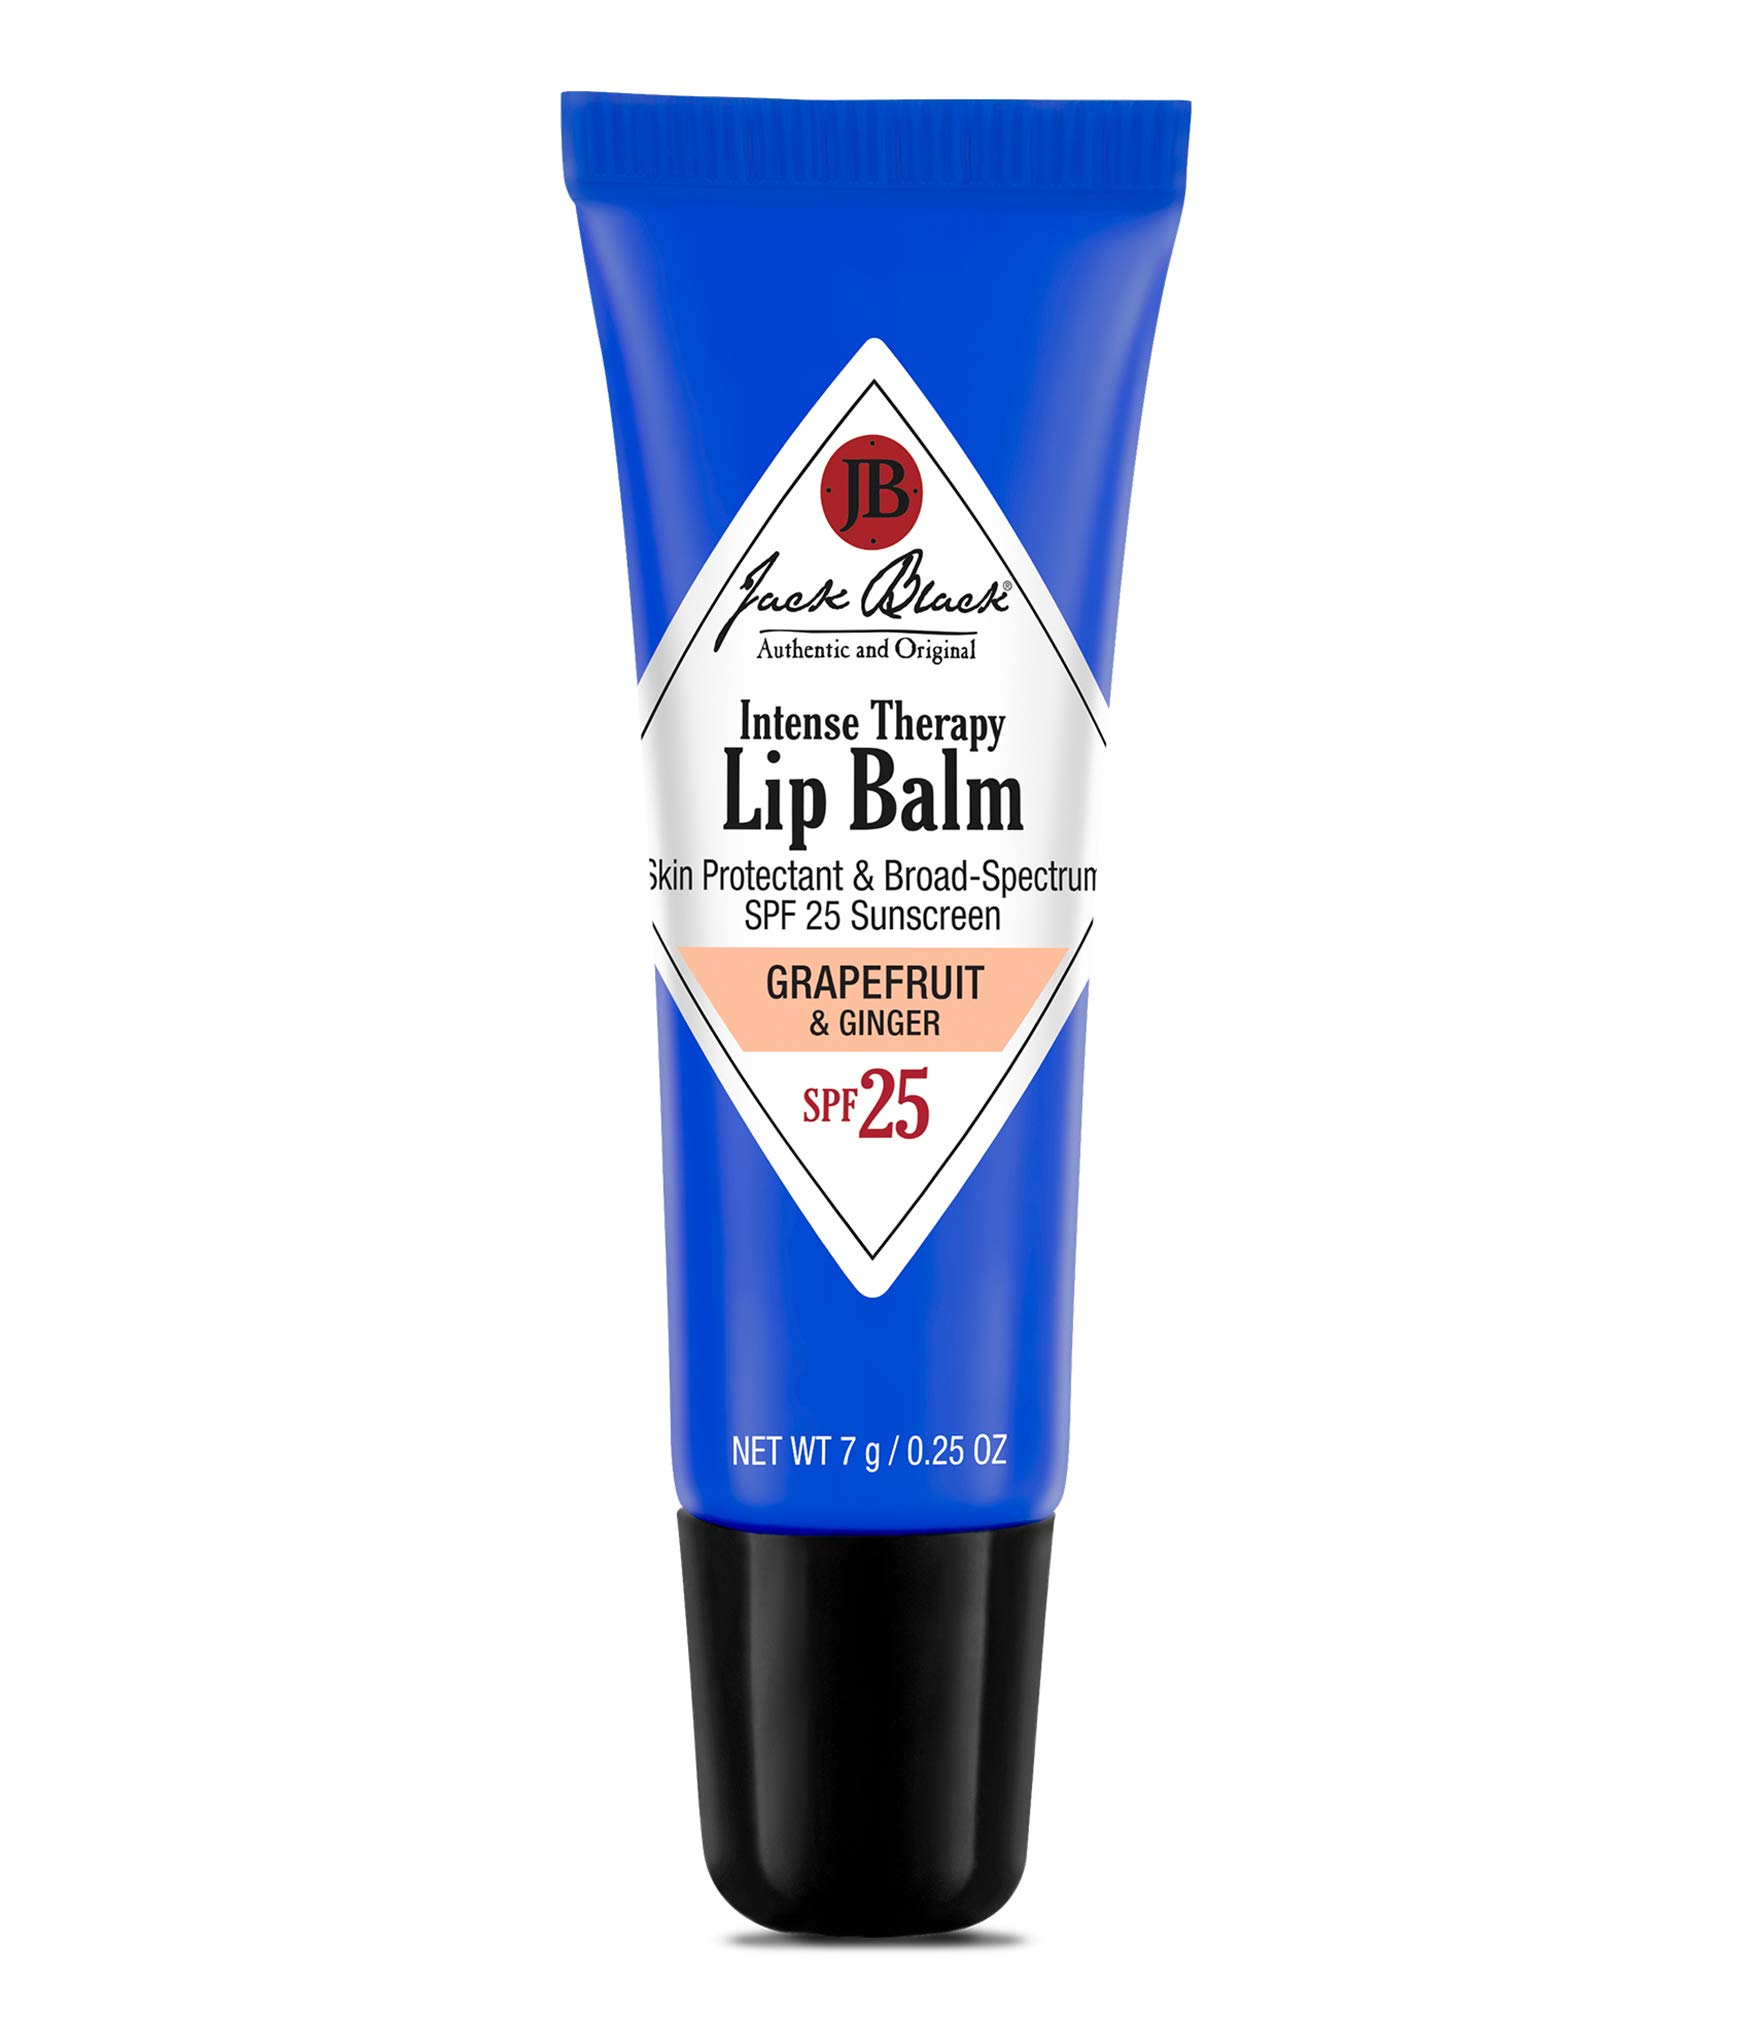 JACK BLACK - Intense Therapy Lip Balm SPF 25 - Green Tea Antioxidants, Long Lasting Treatment, Broad-Spectrum UVA and UVB Protection, Grapefruit & Ginger Flavor, 0.25 oz.